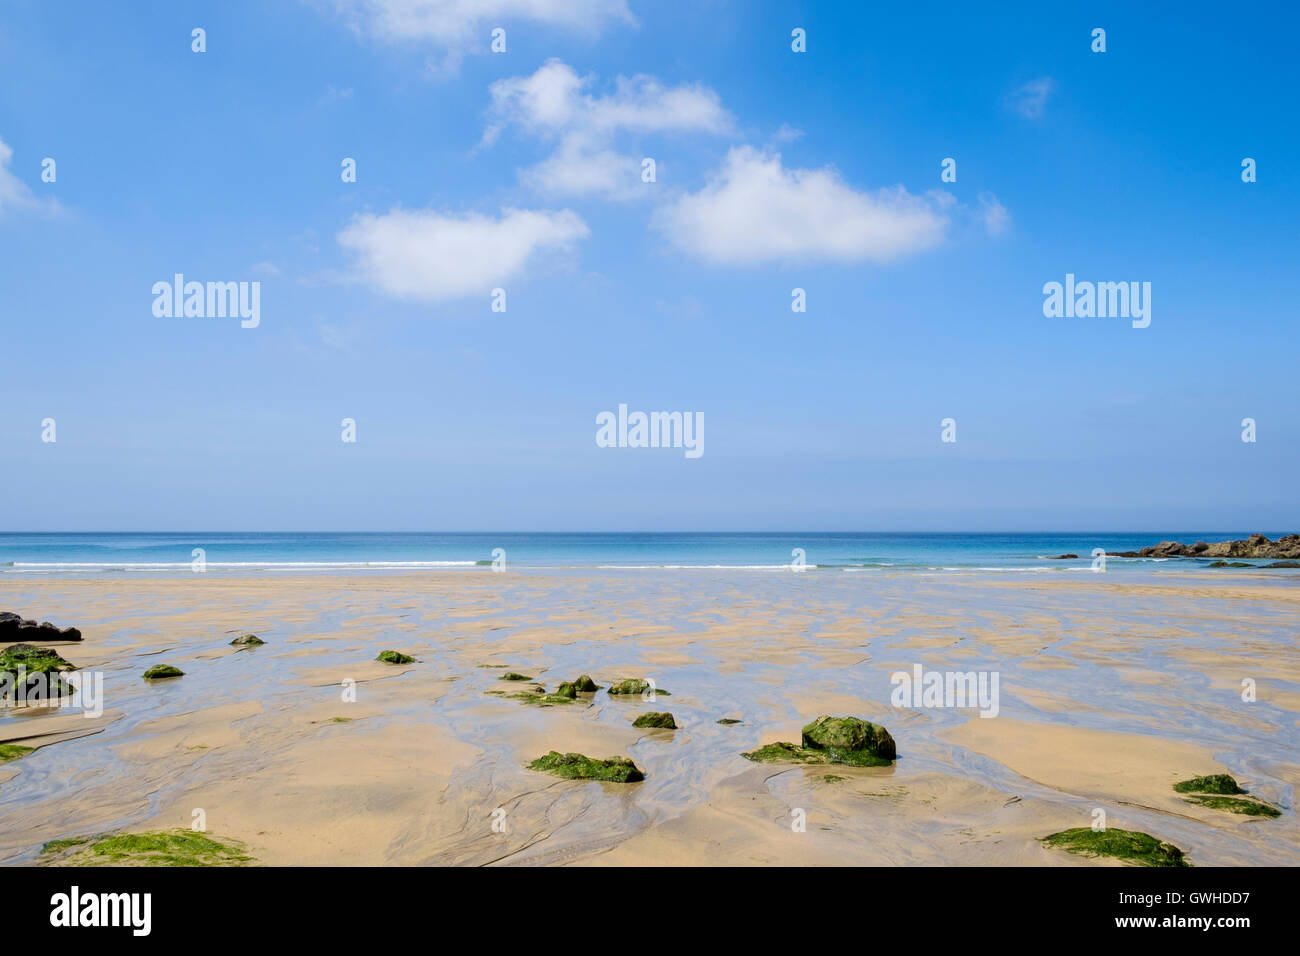 Sandy empty beach UK with rocks and seaweed - Cornwall, England, UK in summer - Stock Image